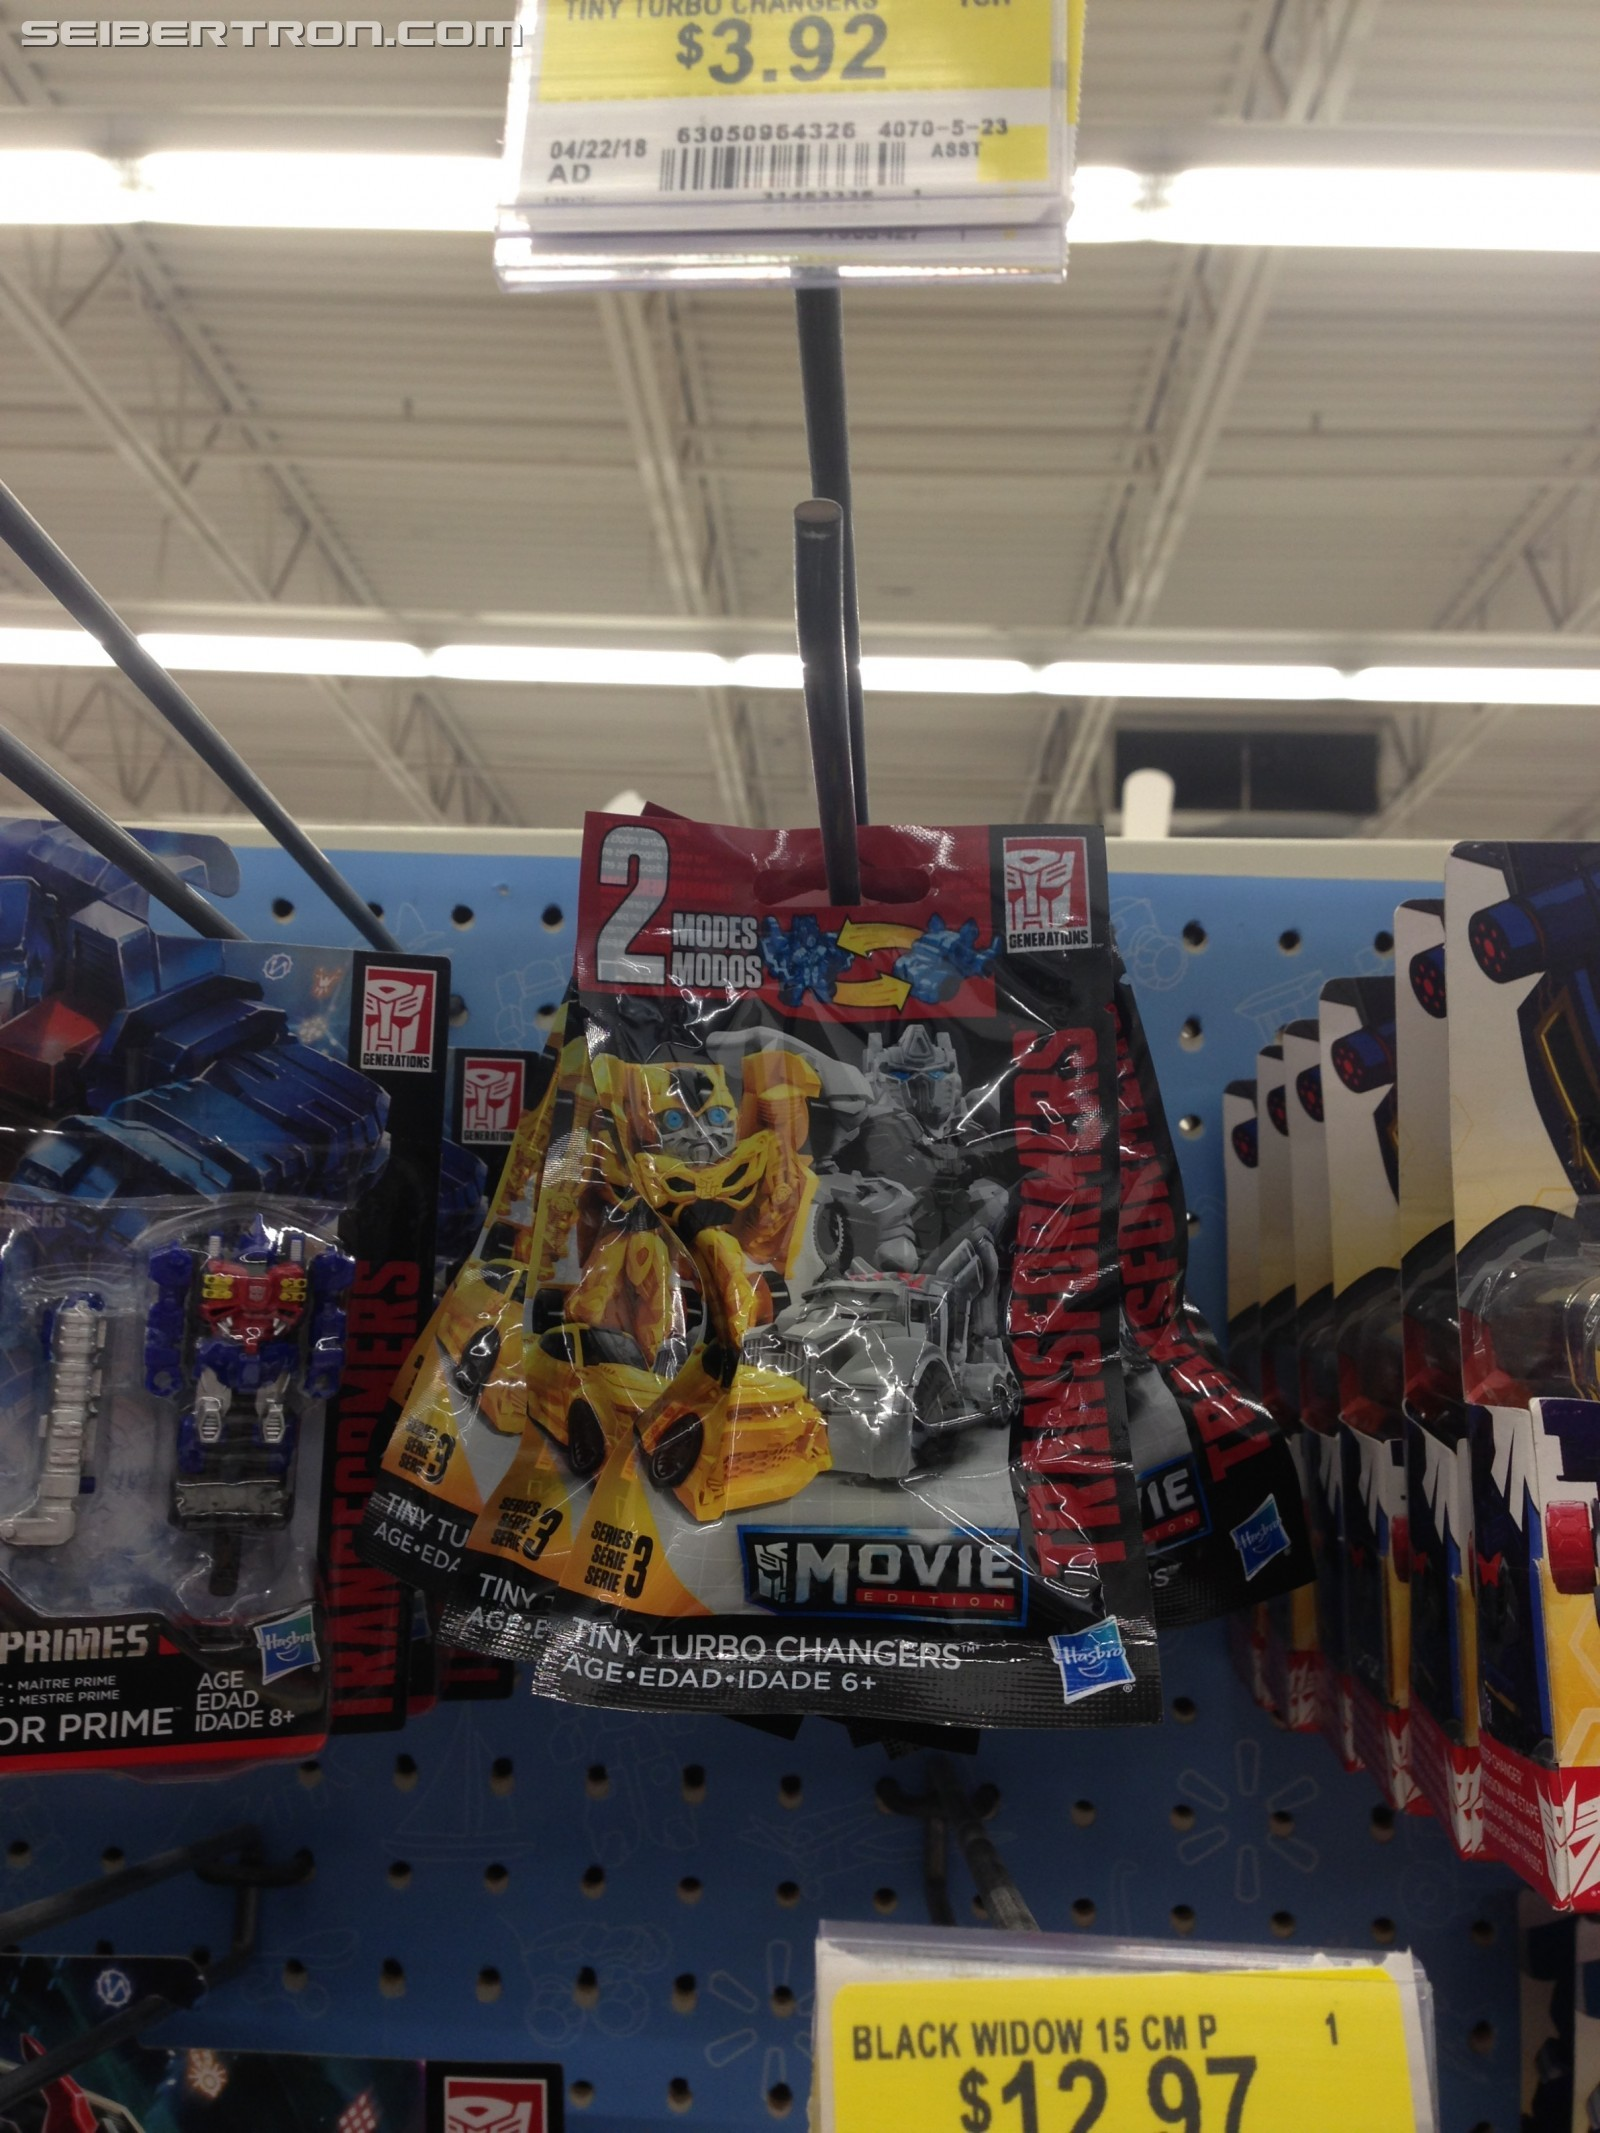 Transformers News: Transformers Tiny Turbo Changers Series 3 Found in Canada